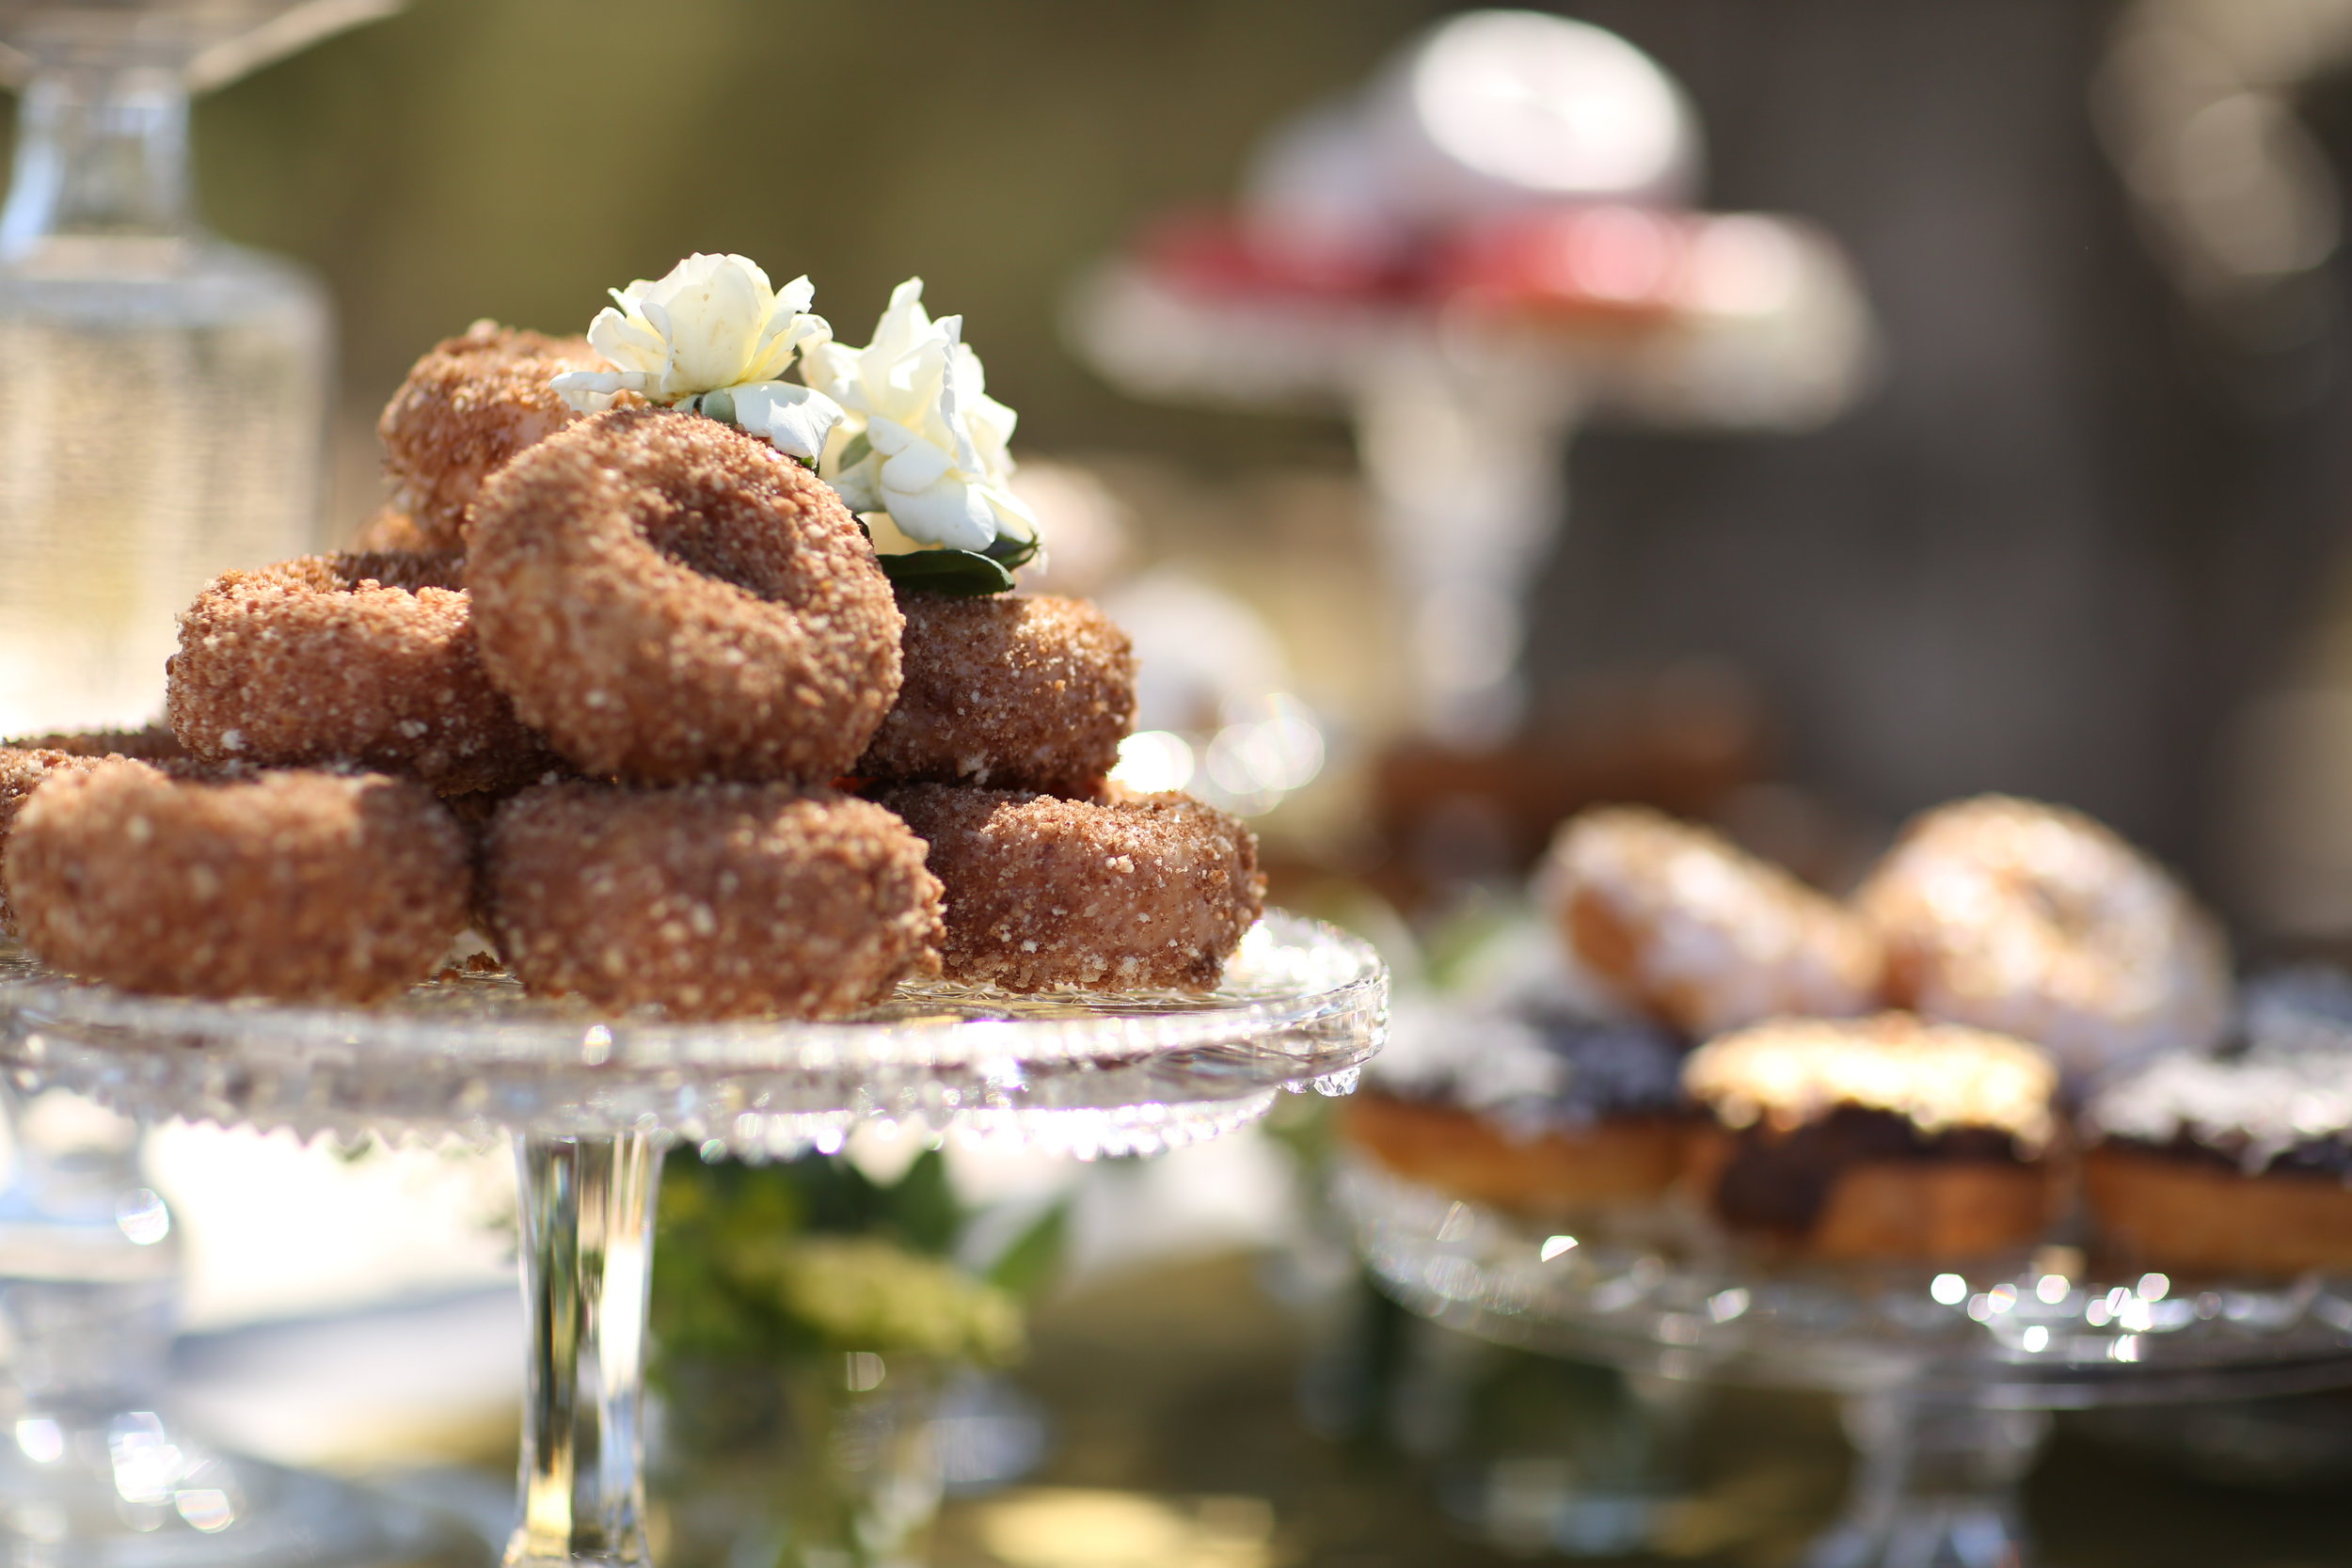 Pedestal platters, crystal platters, pitchers, bowls, Plates with donuts from a donut shop in the Temecula Valley